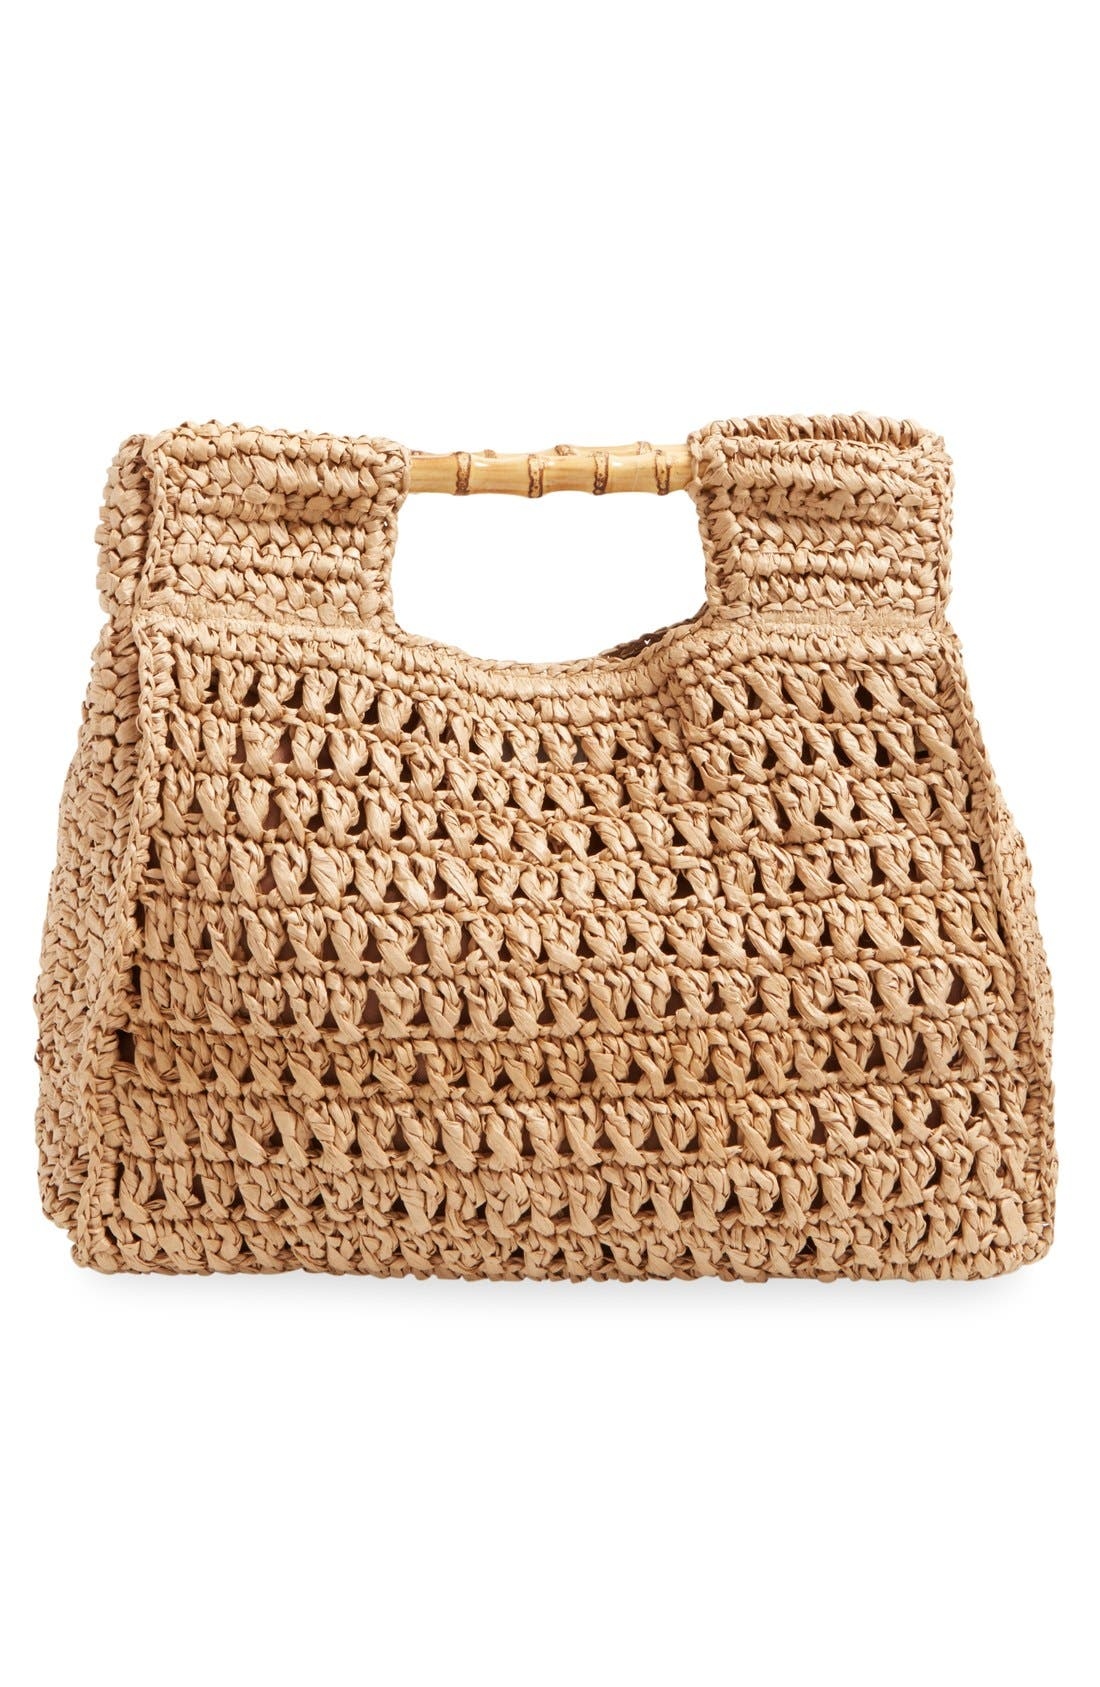 Woven Straw Tote,                             Alternate thumbnail 3, color,                             Natural